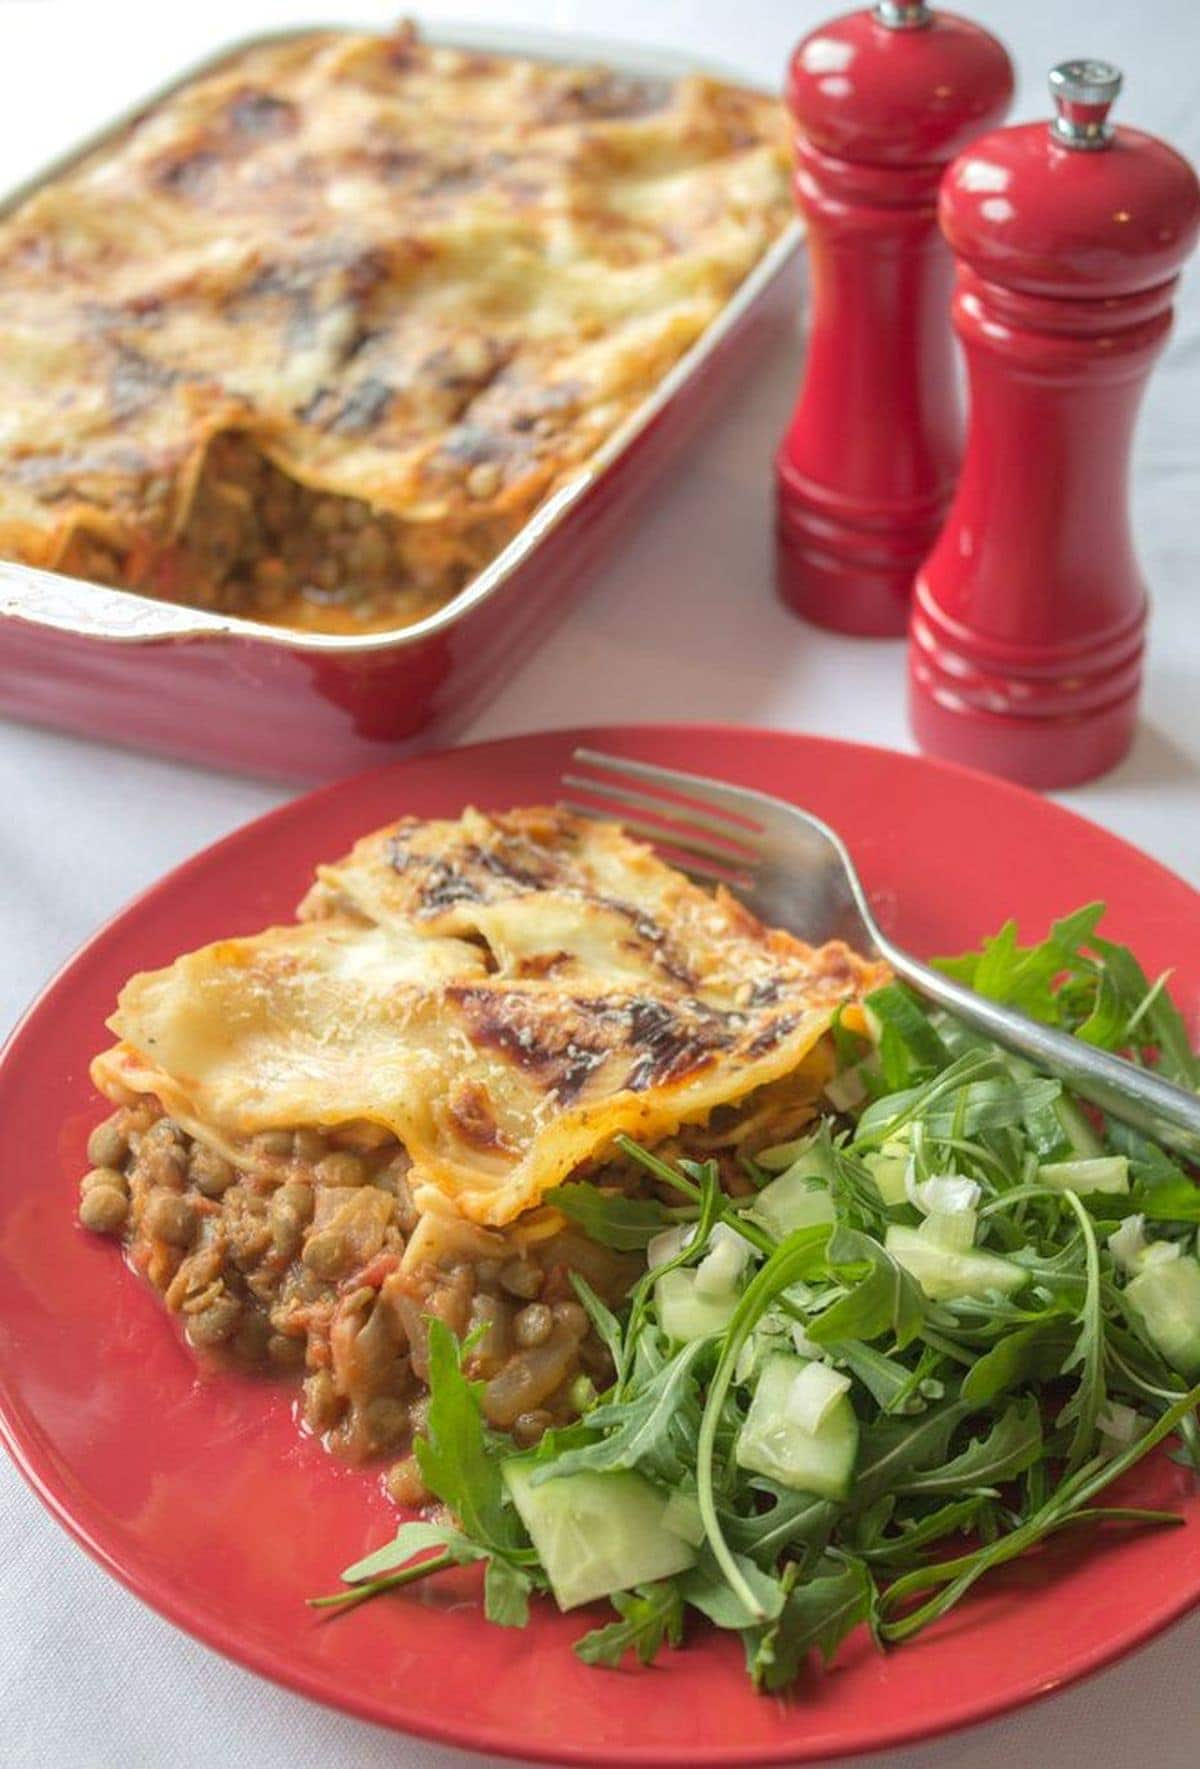 A portion of green lentil lasagne served with side salad on a plate. The rest of the lasagne dish and salt and pepper cellars in the background.